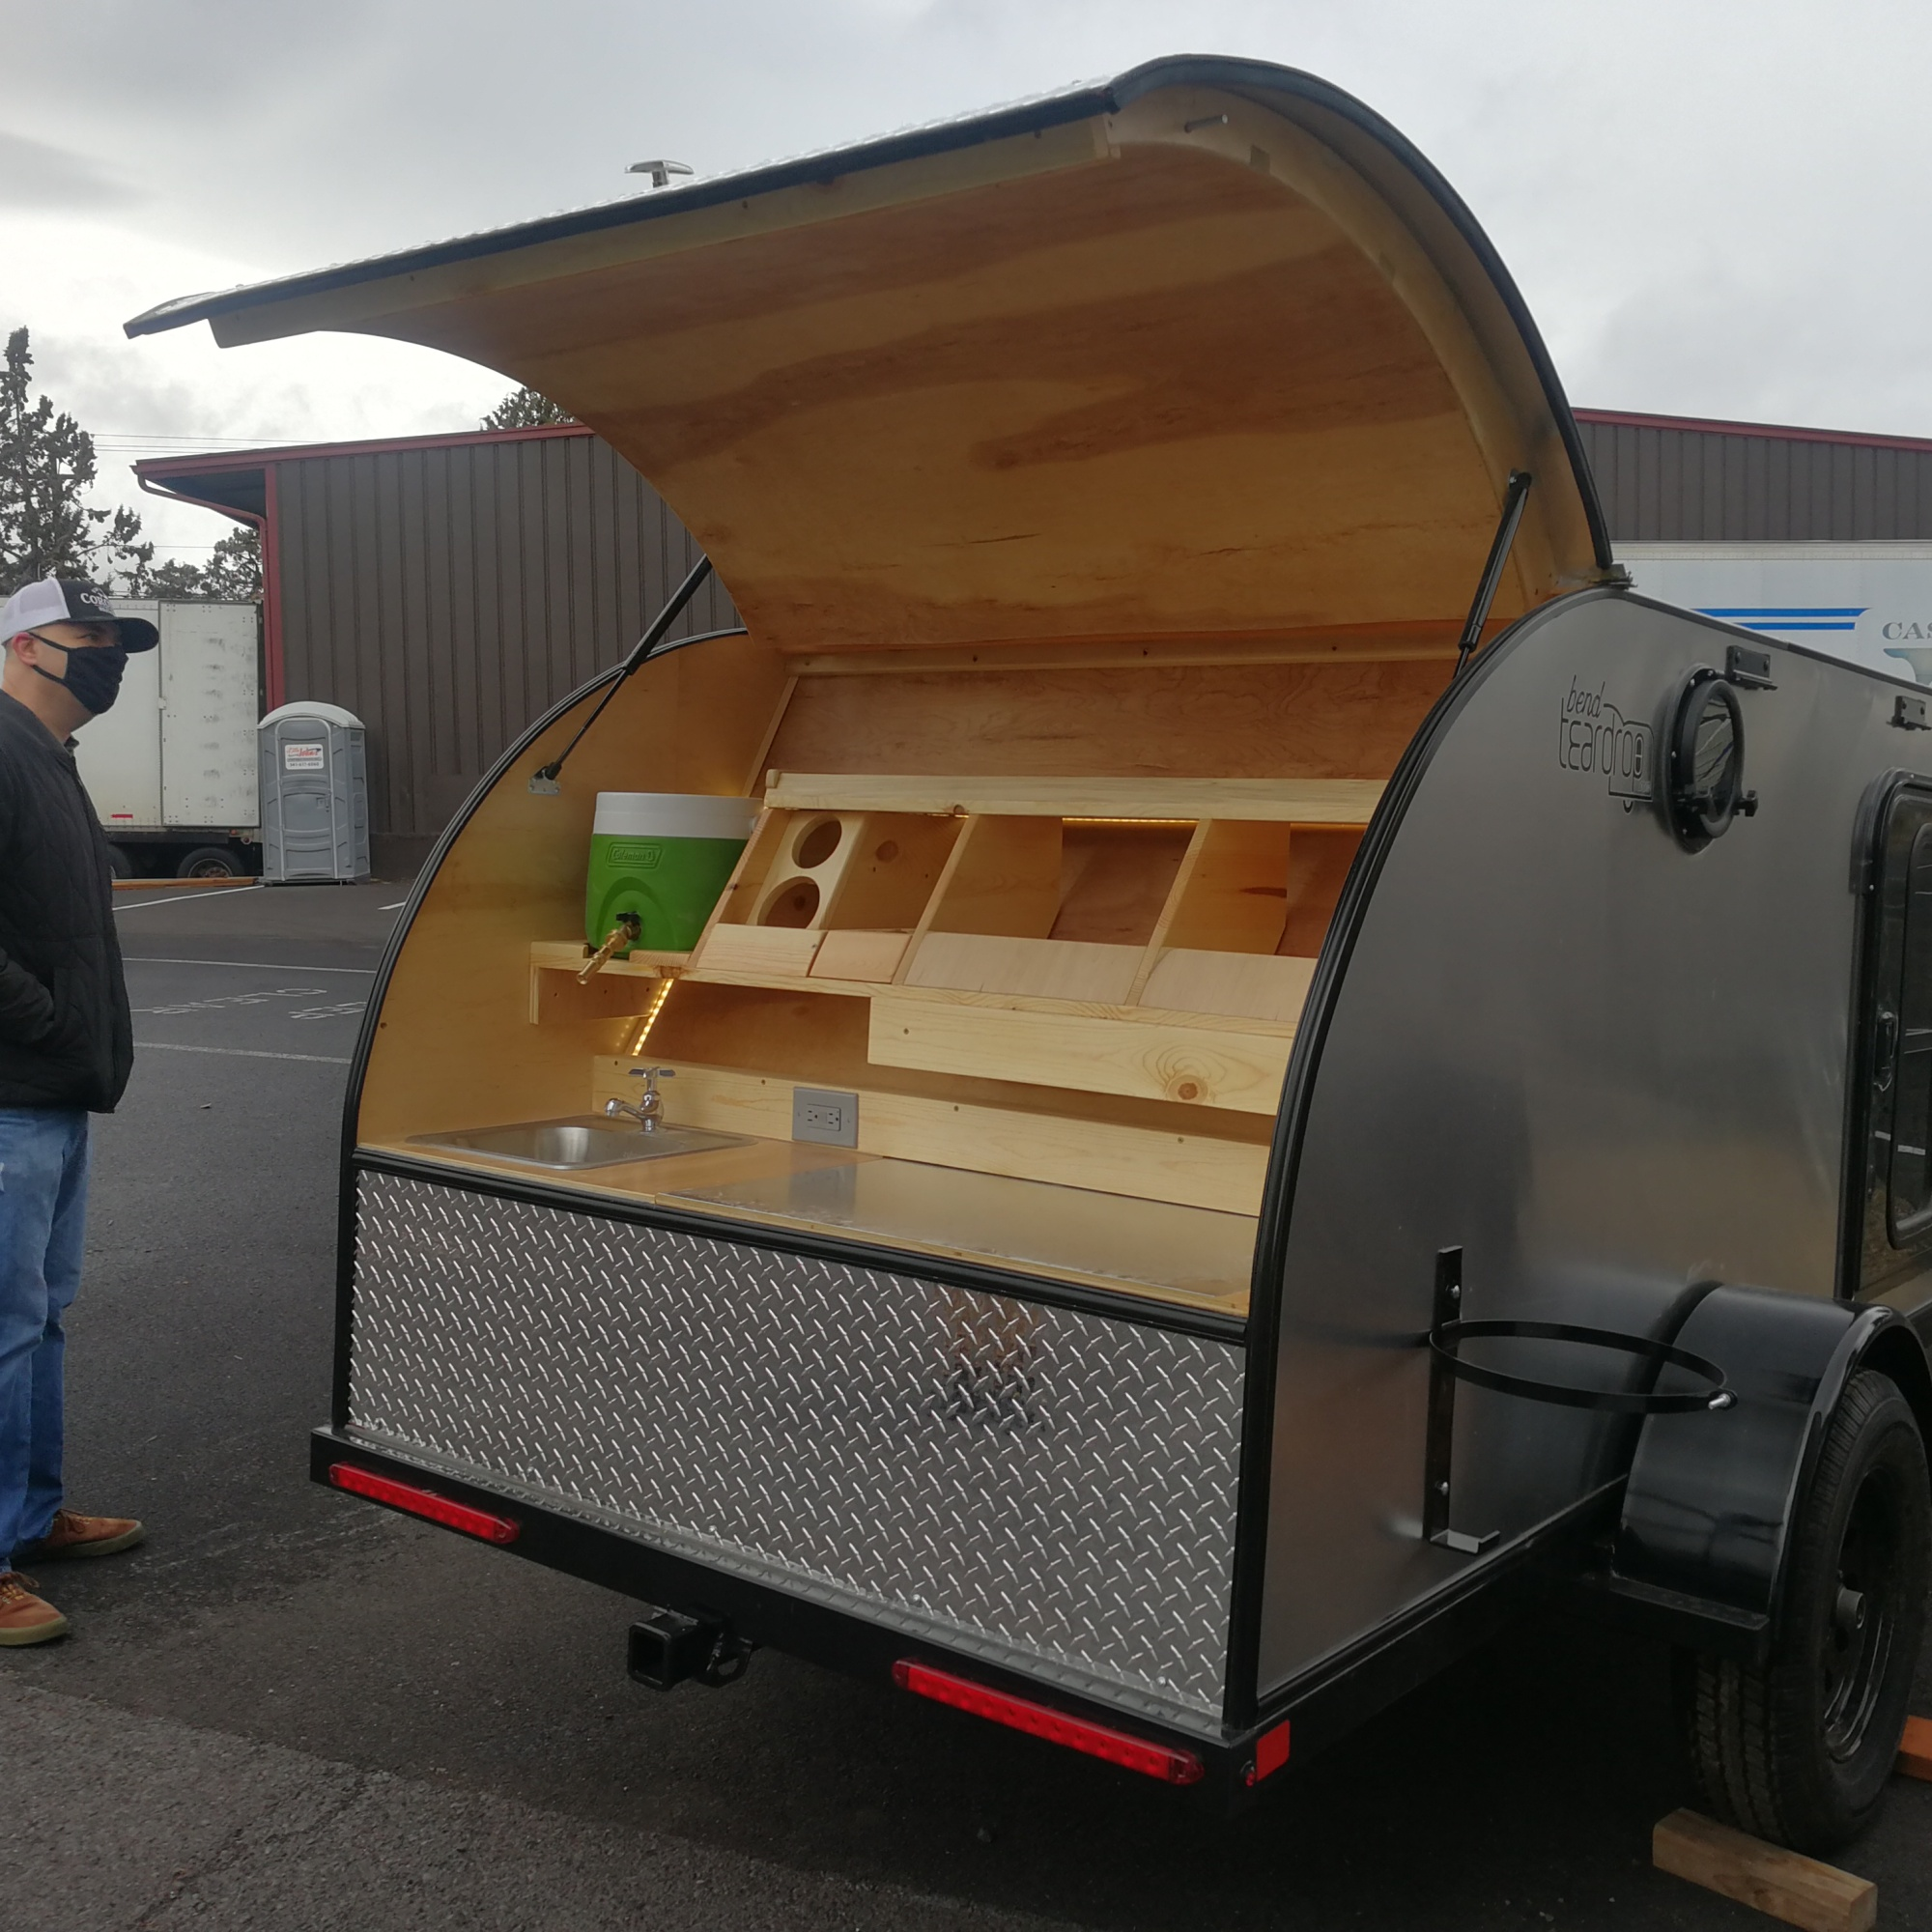 Bend Teardrop Trailer